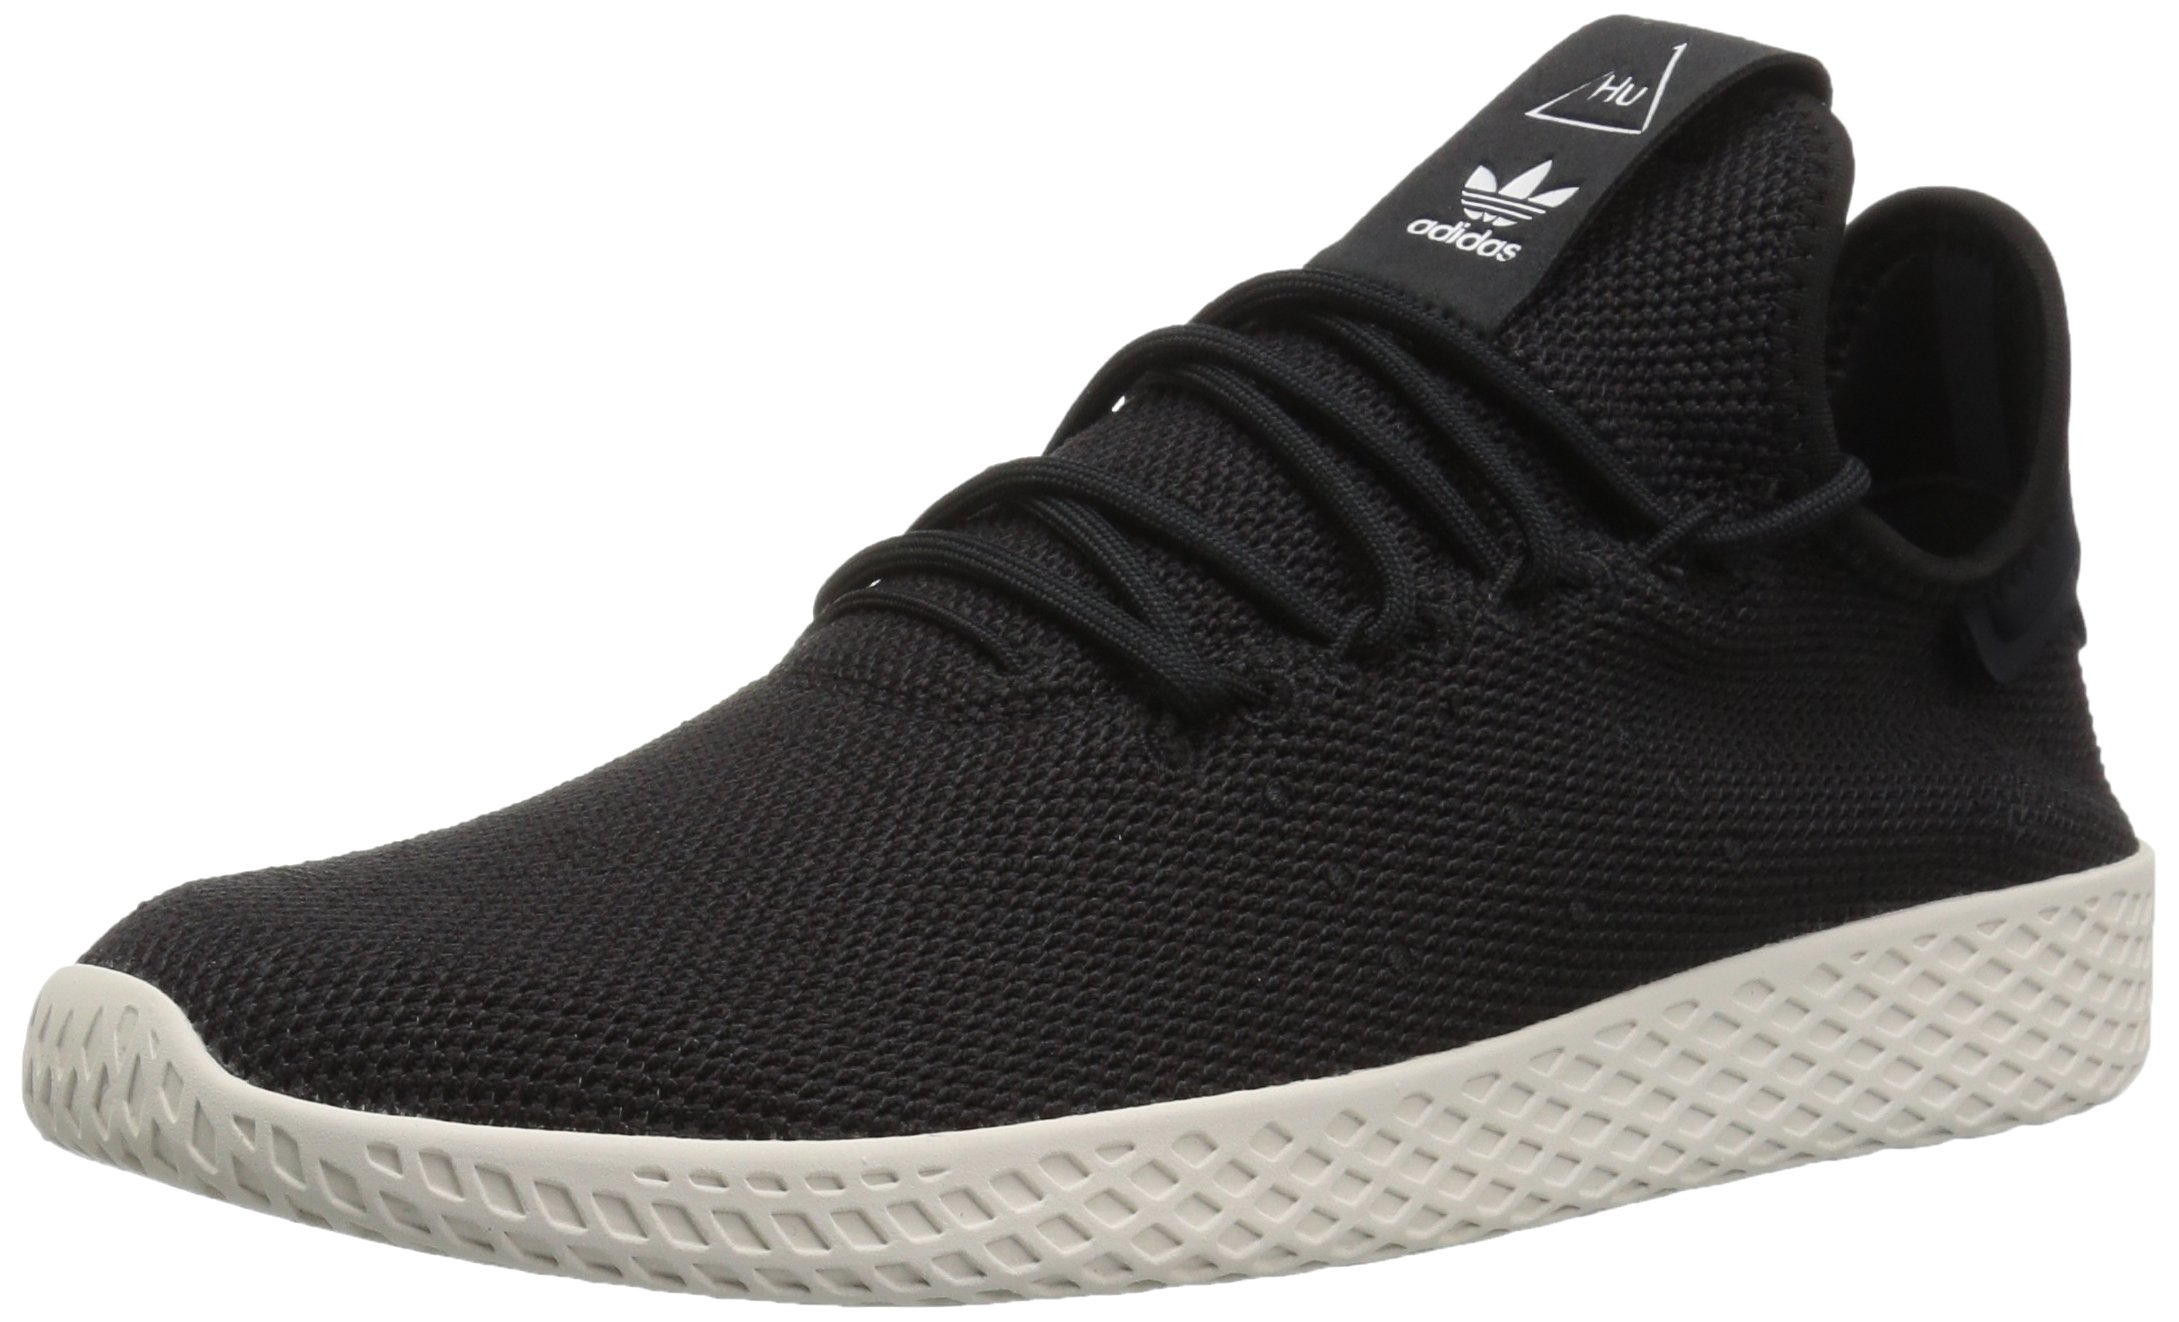 adidas Originals Men's PW HU Tennis Shoe, Black/Black/Chalk White, 10 M US by adidas Originals